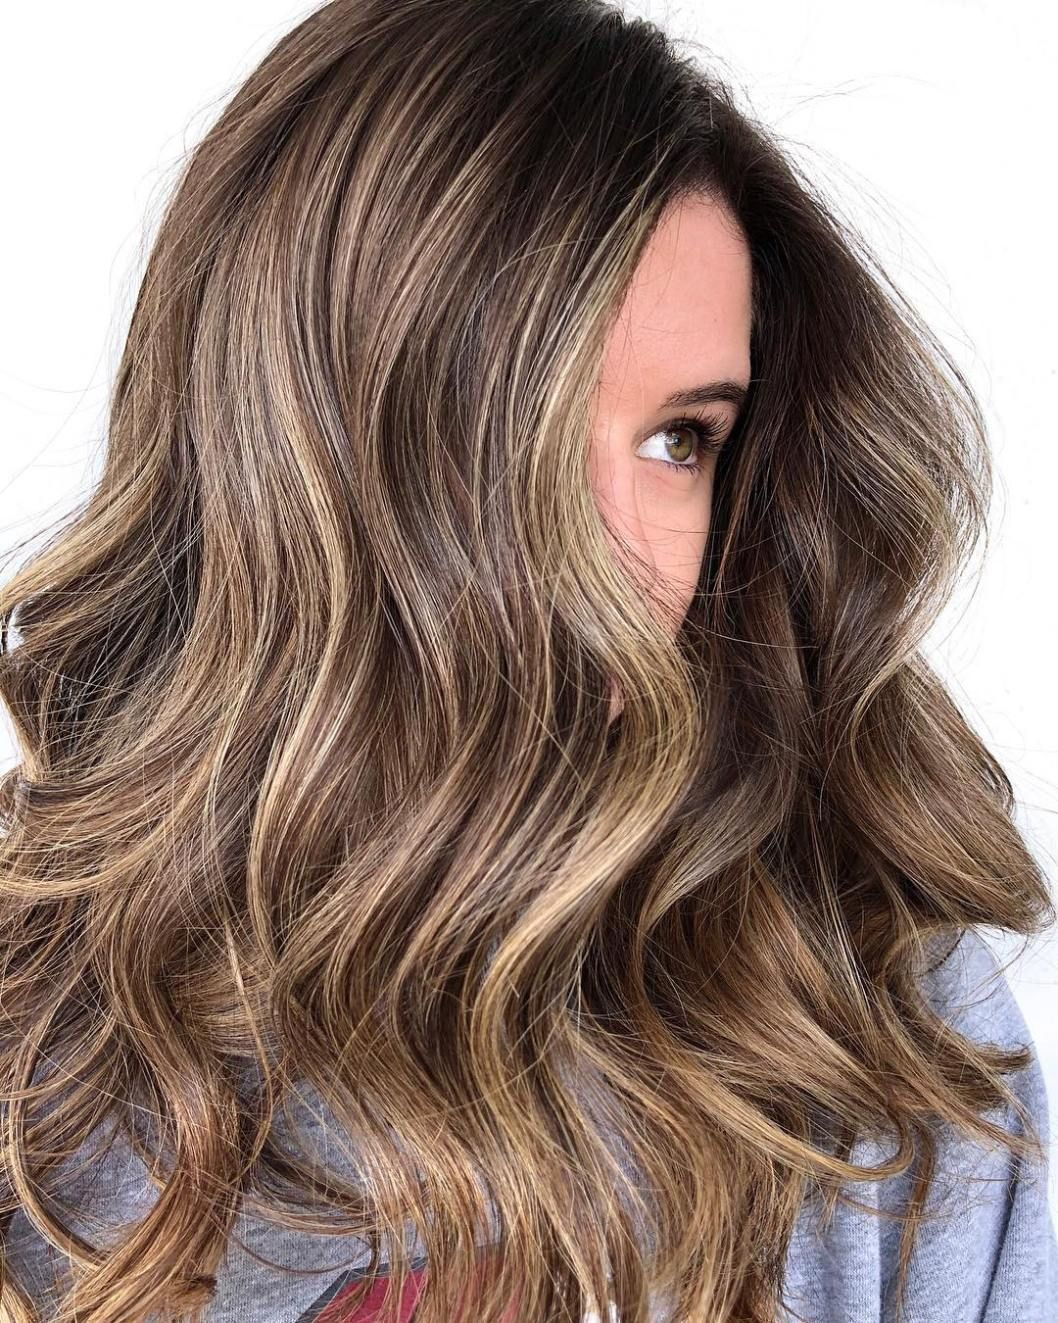 Hair Colors For Warm Skin Tones And Brown Eyes Best Hair Color For Black Natural Hair Check More At Http Fre Hair Styles Dark Brunette Hair Hair Color Dark